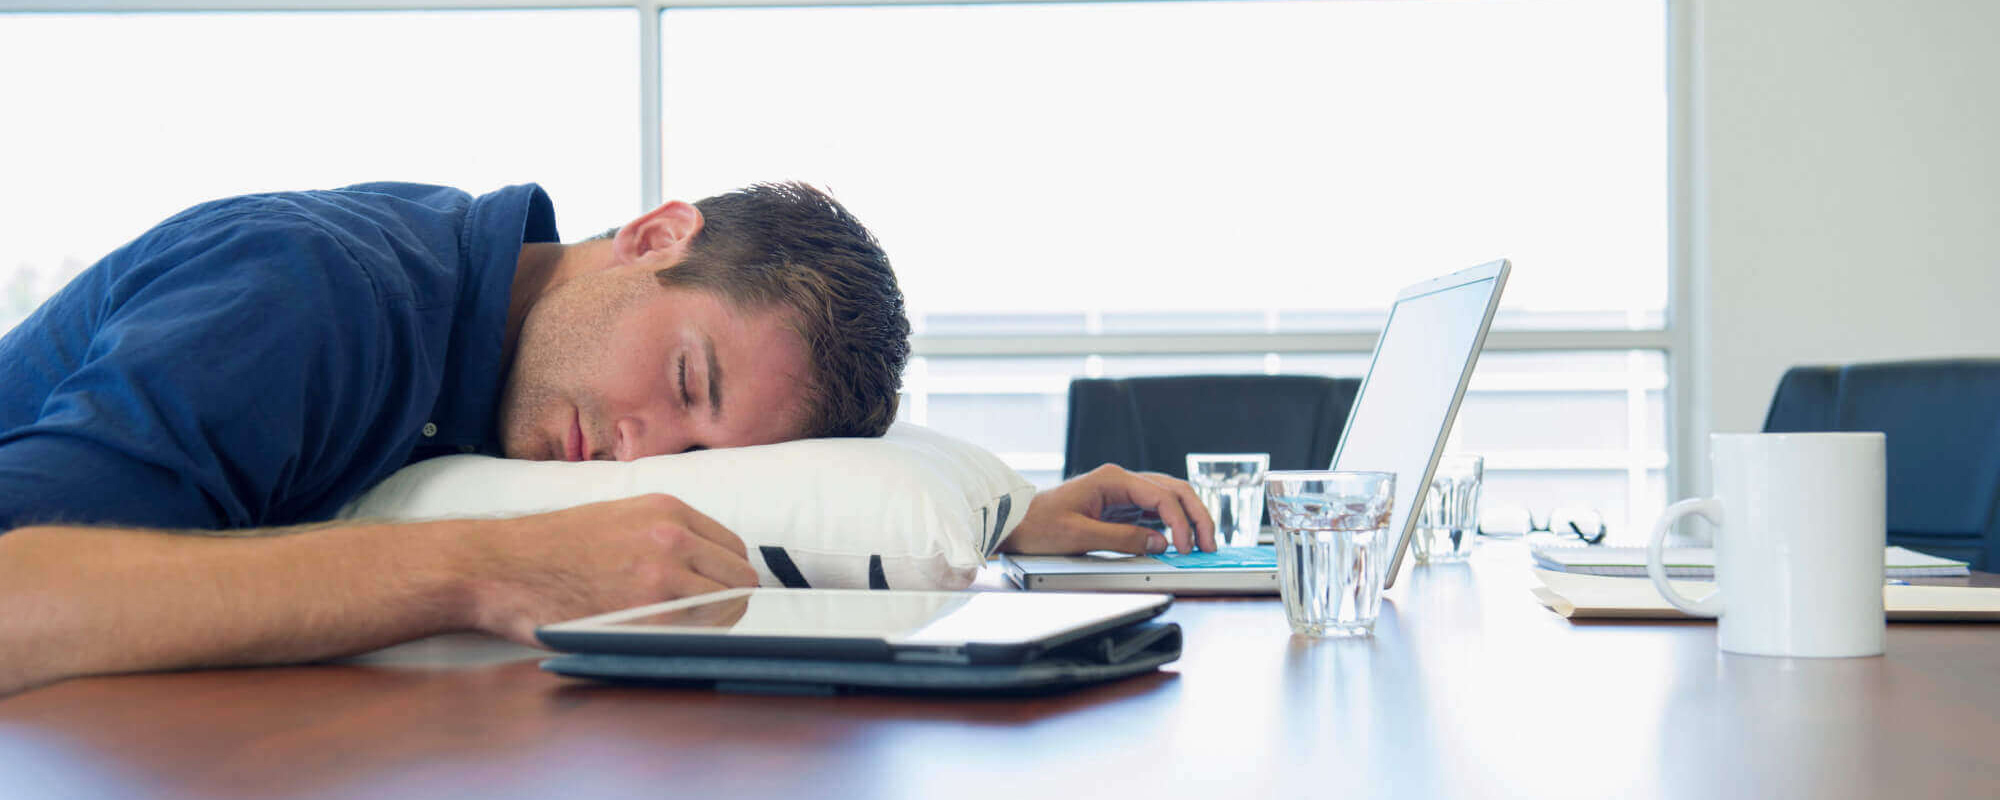 Research highlights presenteeism challenge for UK employers